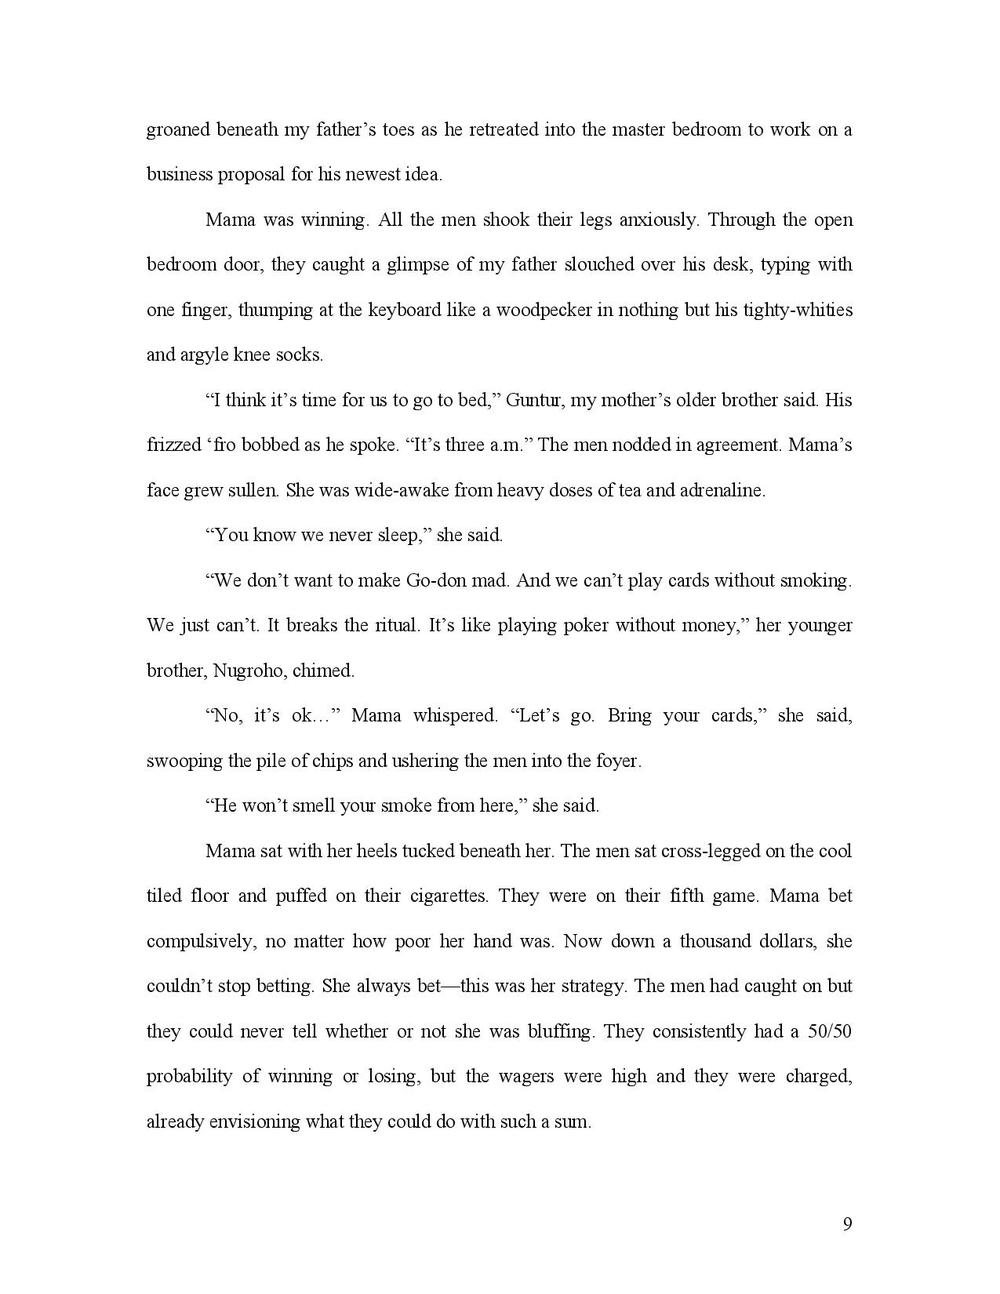 In The Cards_edit_excerpt-page-009.jpg